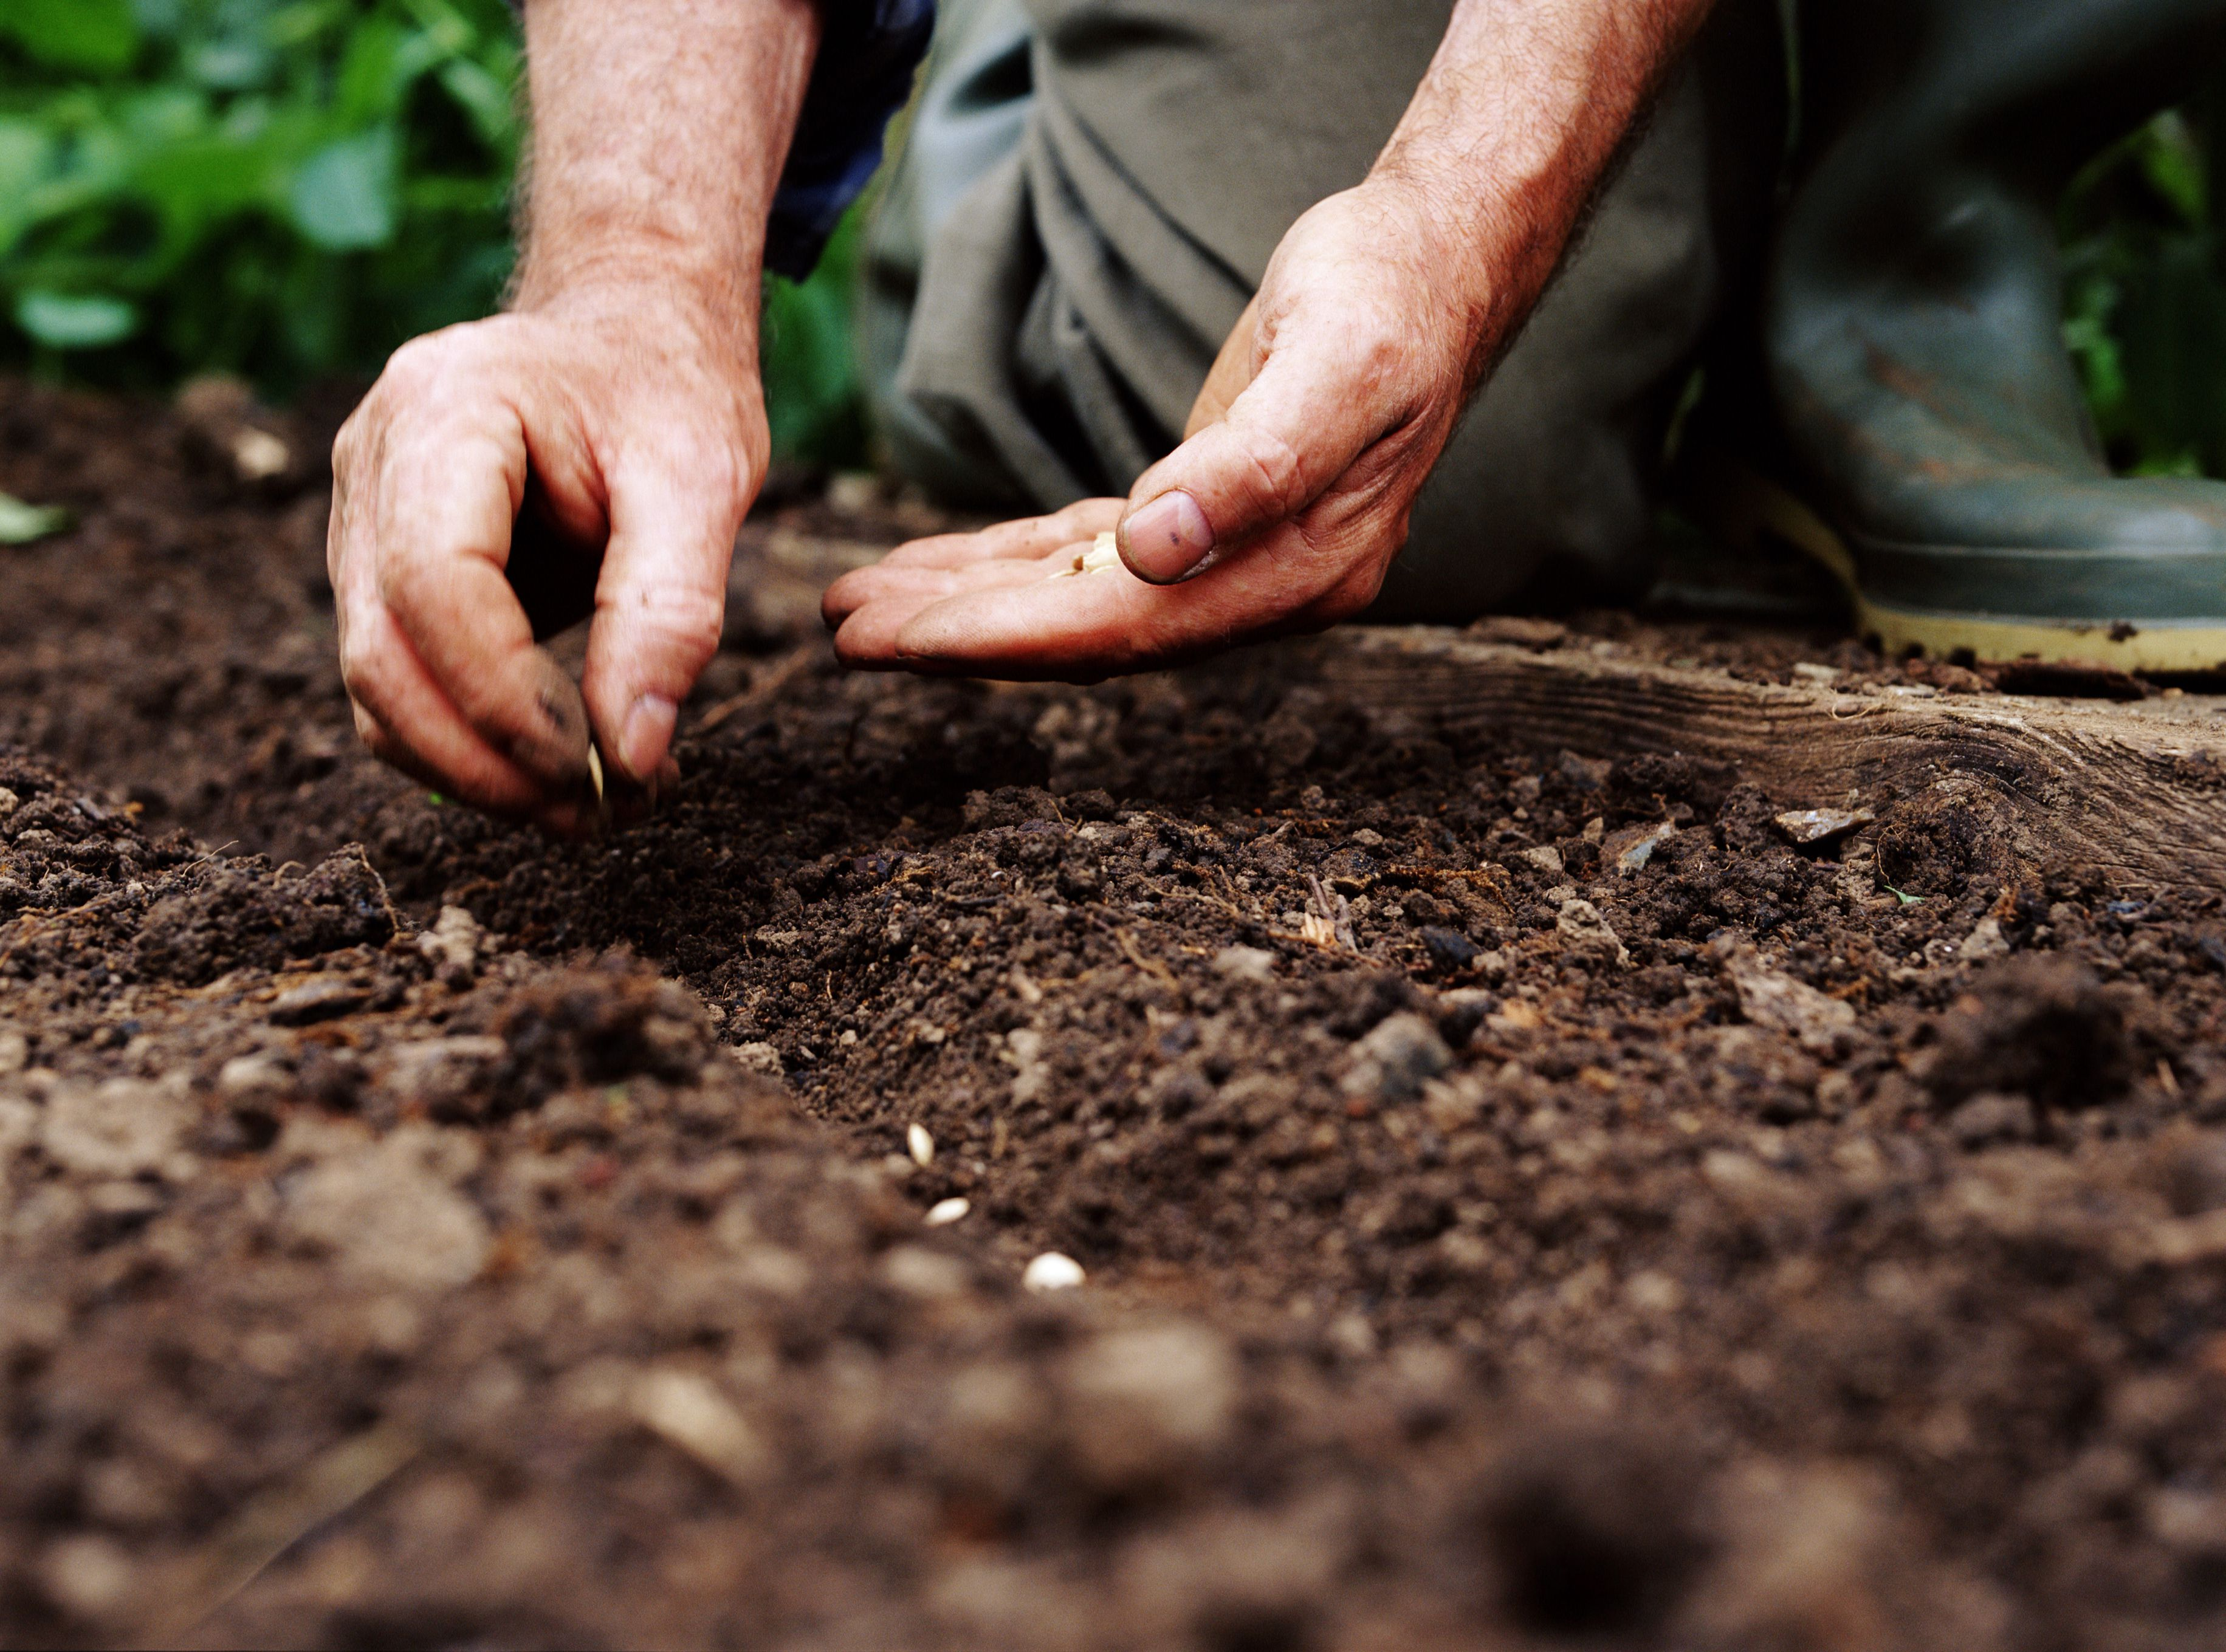 What Is Direct Seeding or Direct Sowing?